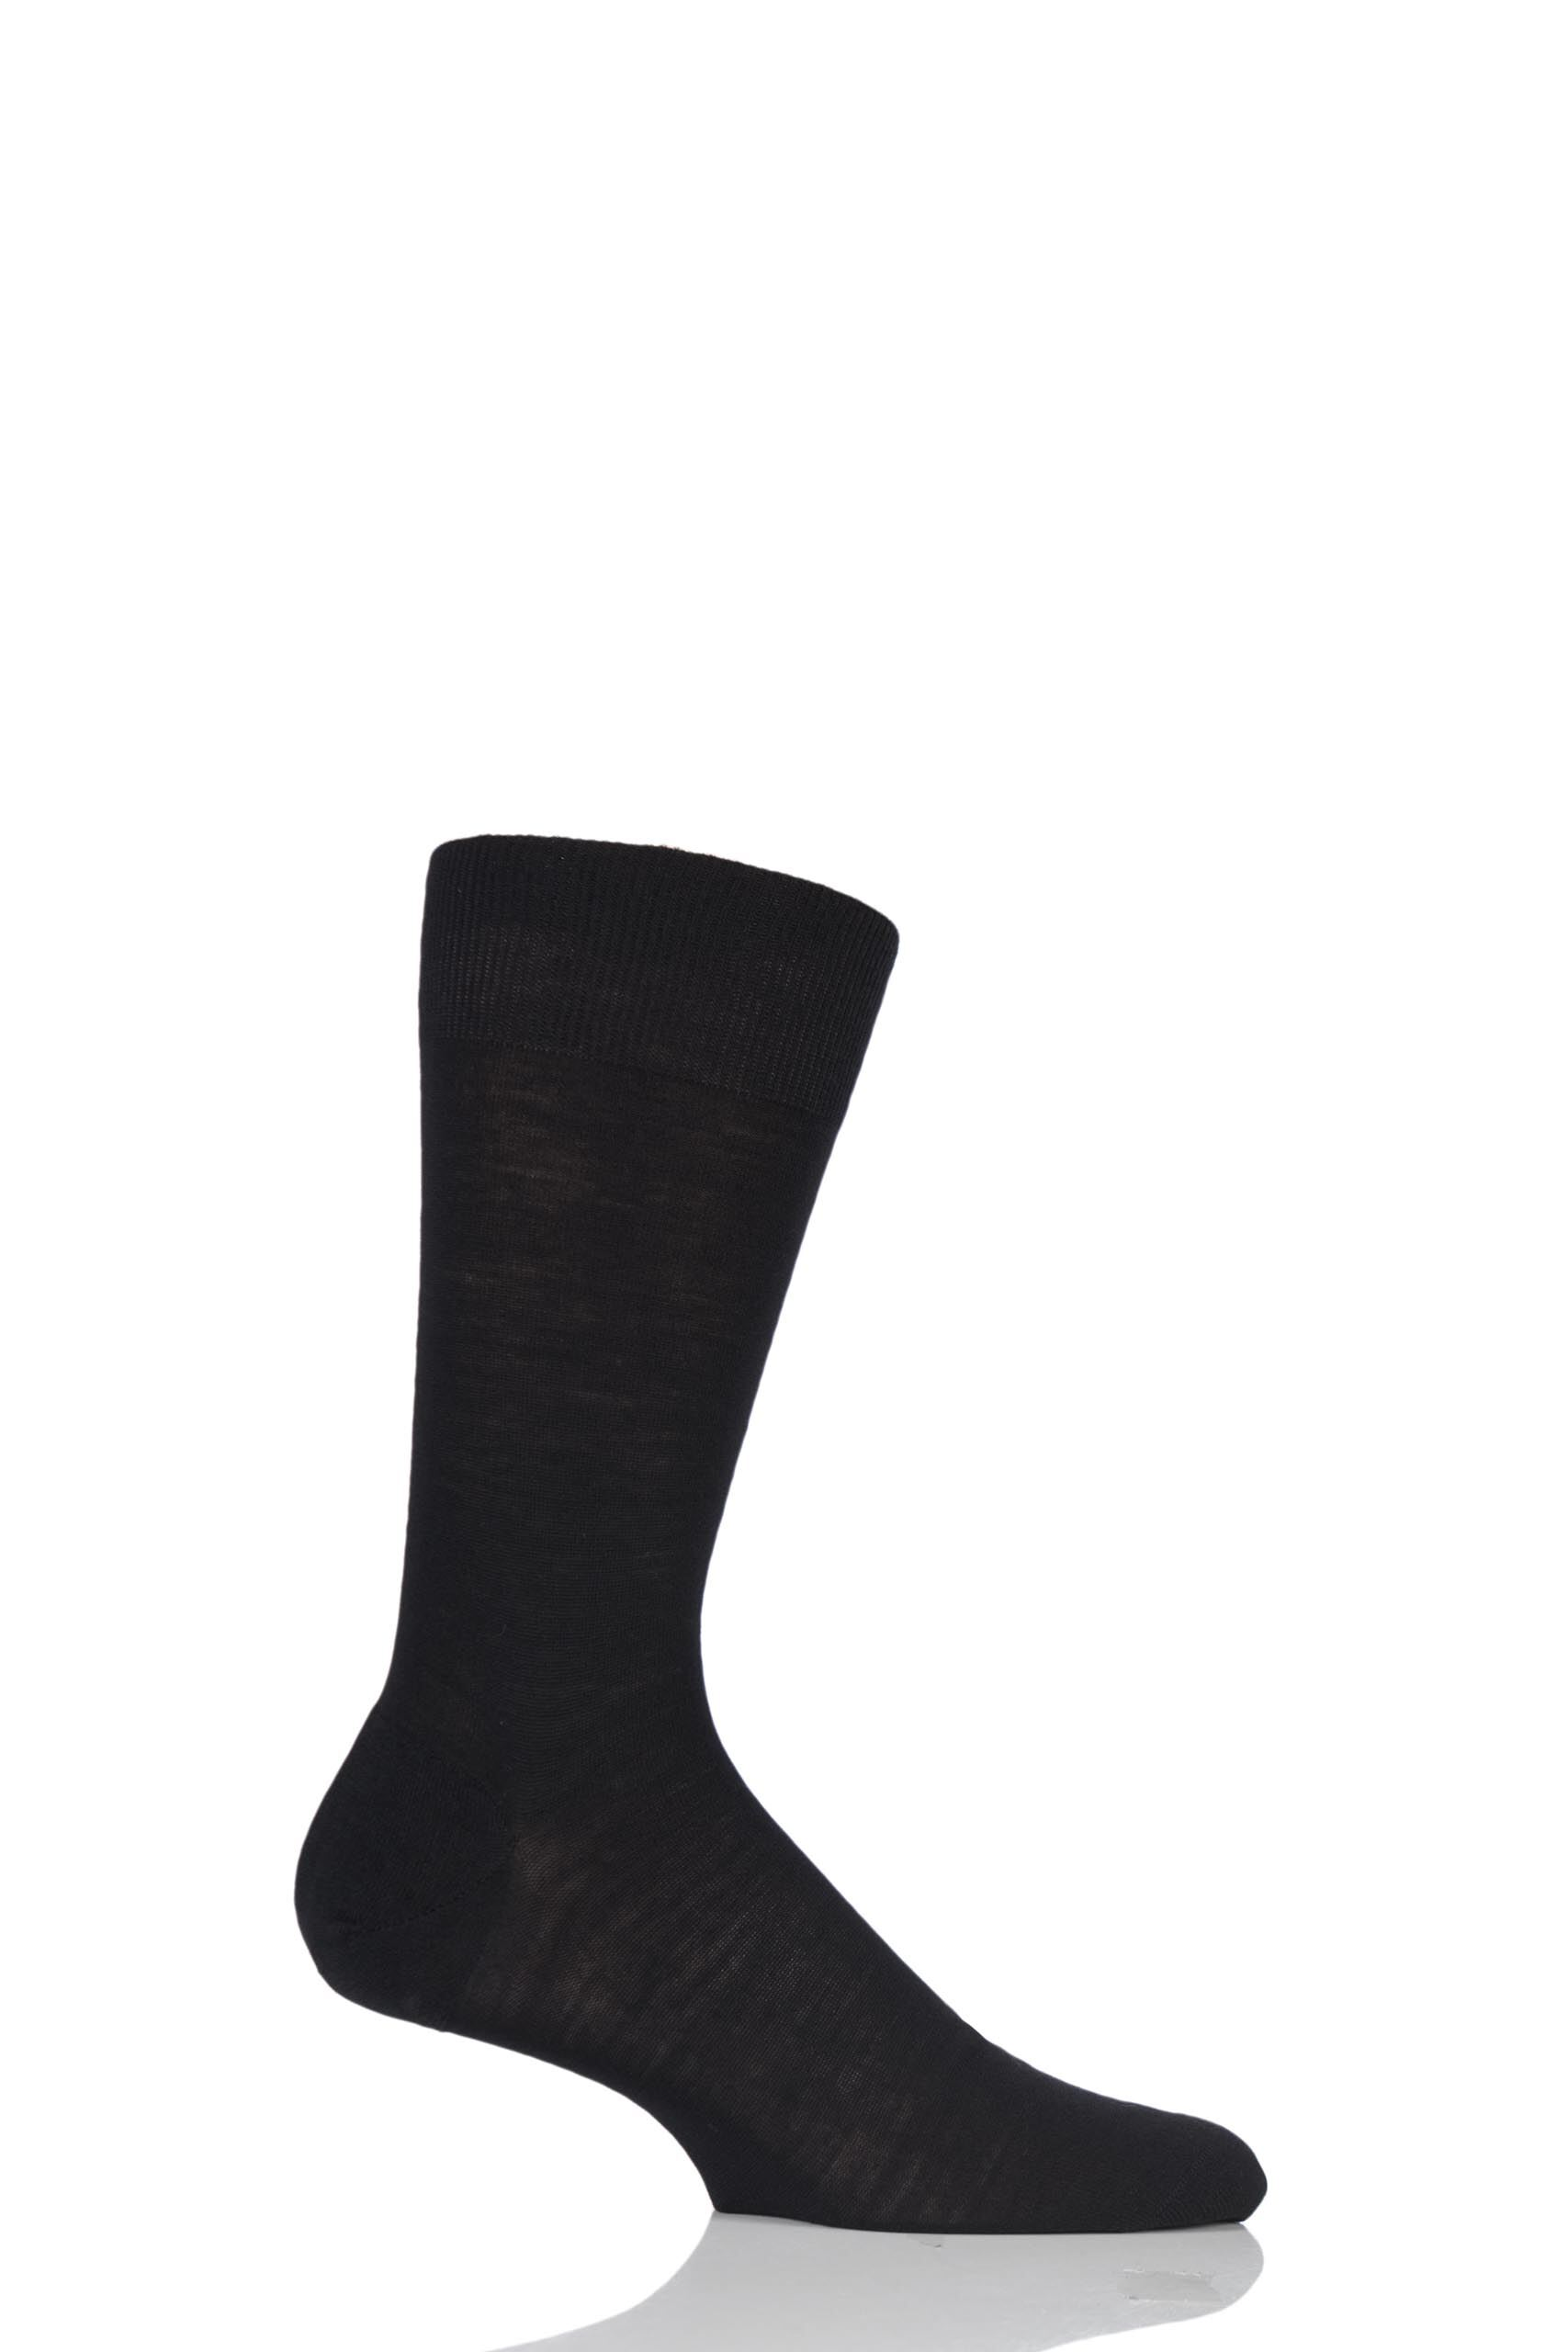 Image of 1 Pair Black Camden Merino Wool Plain Socks Men's 10-12 Mens - Pantherella